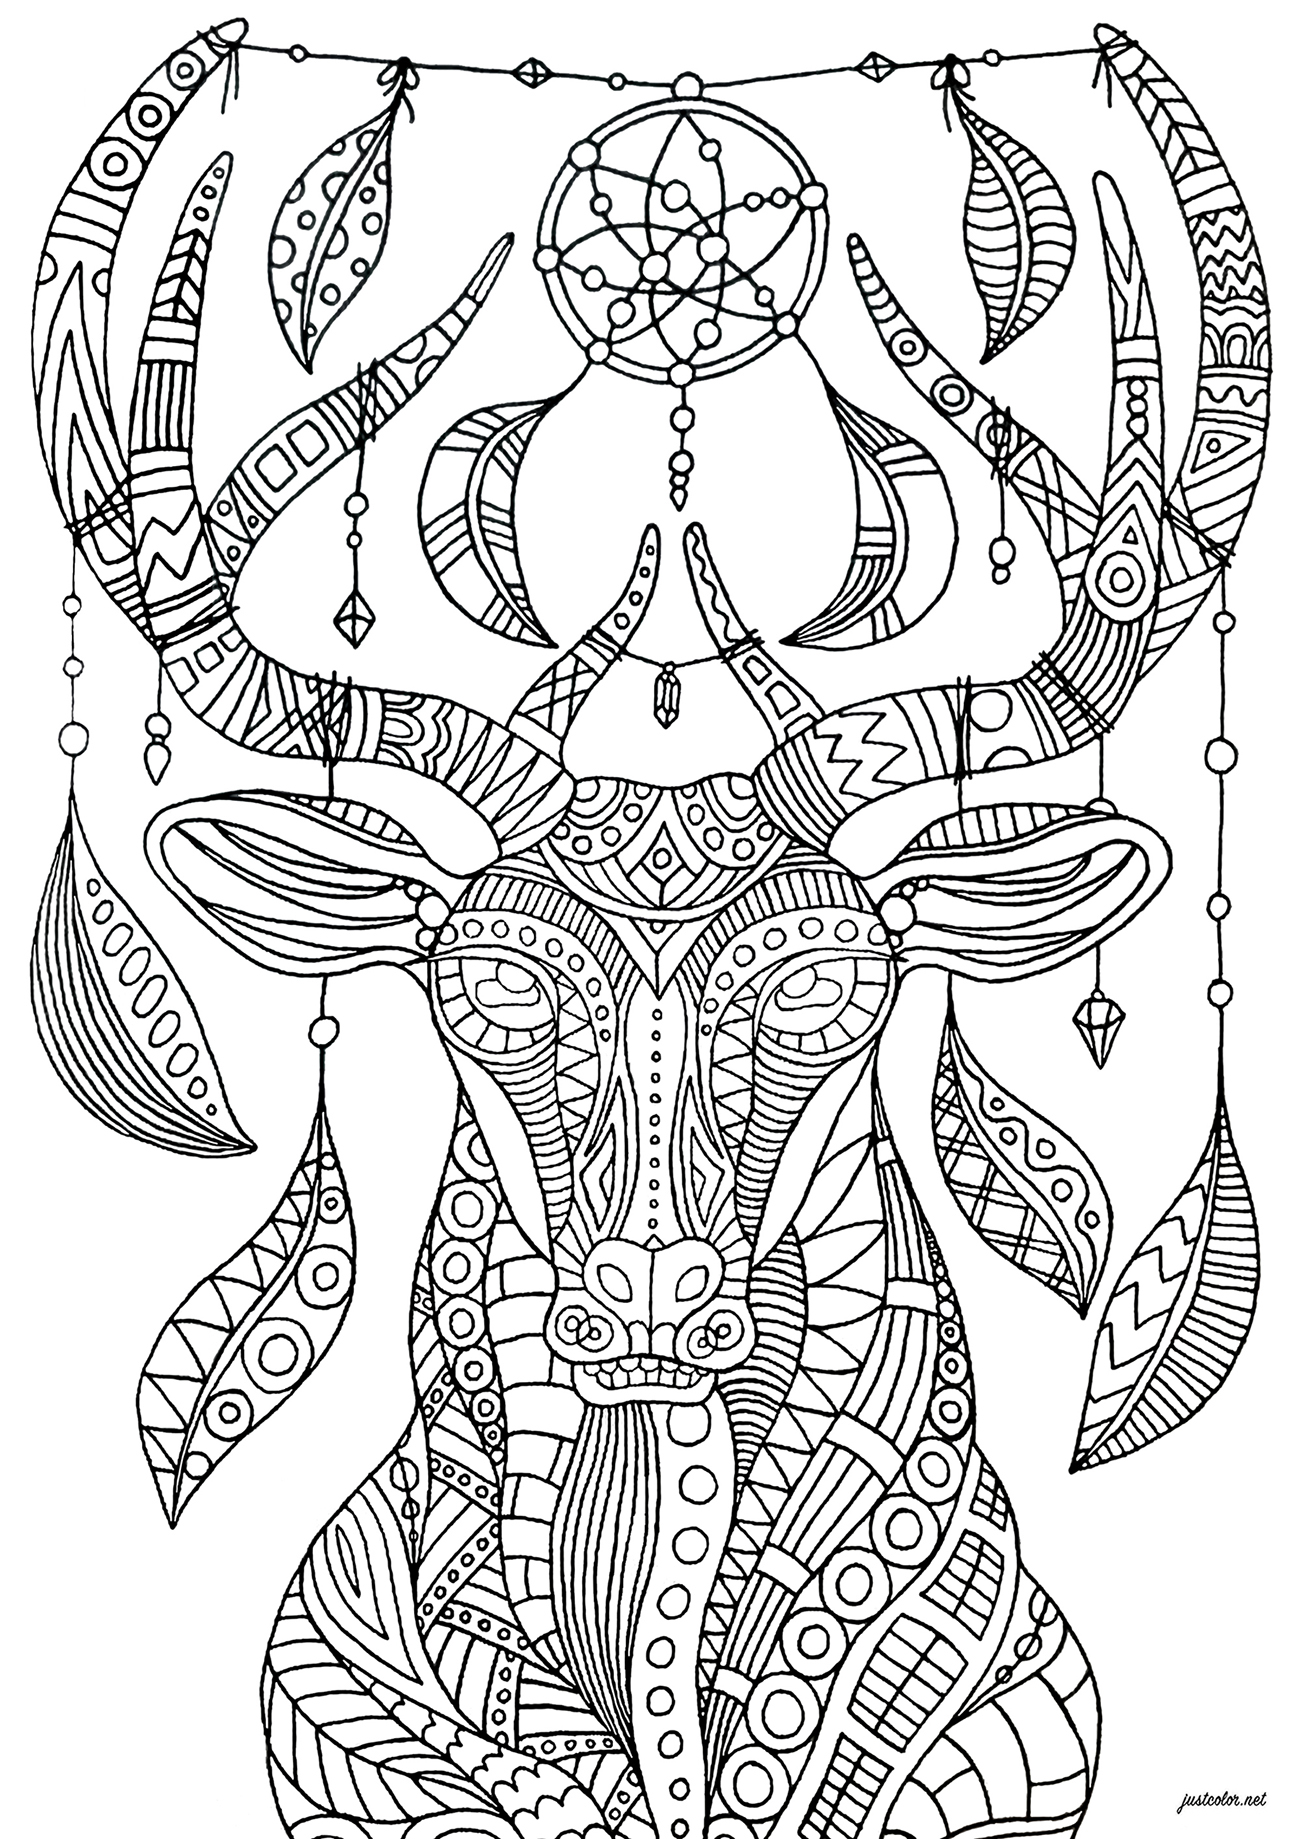 Color this deer with bohemian and relaxing ornaments - complex version